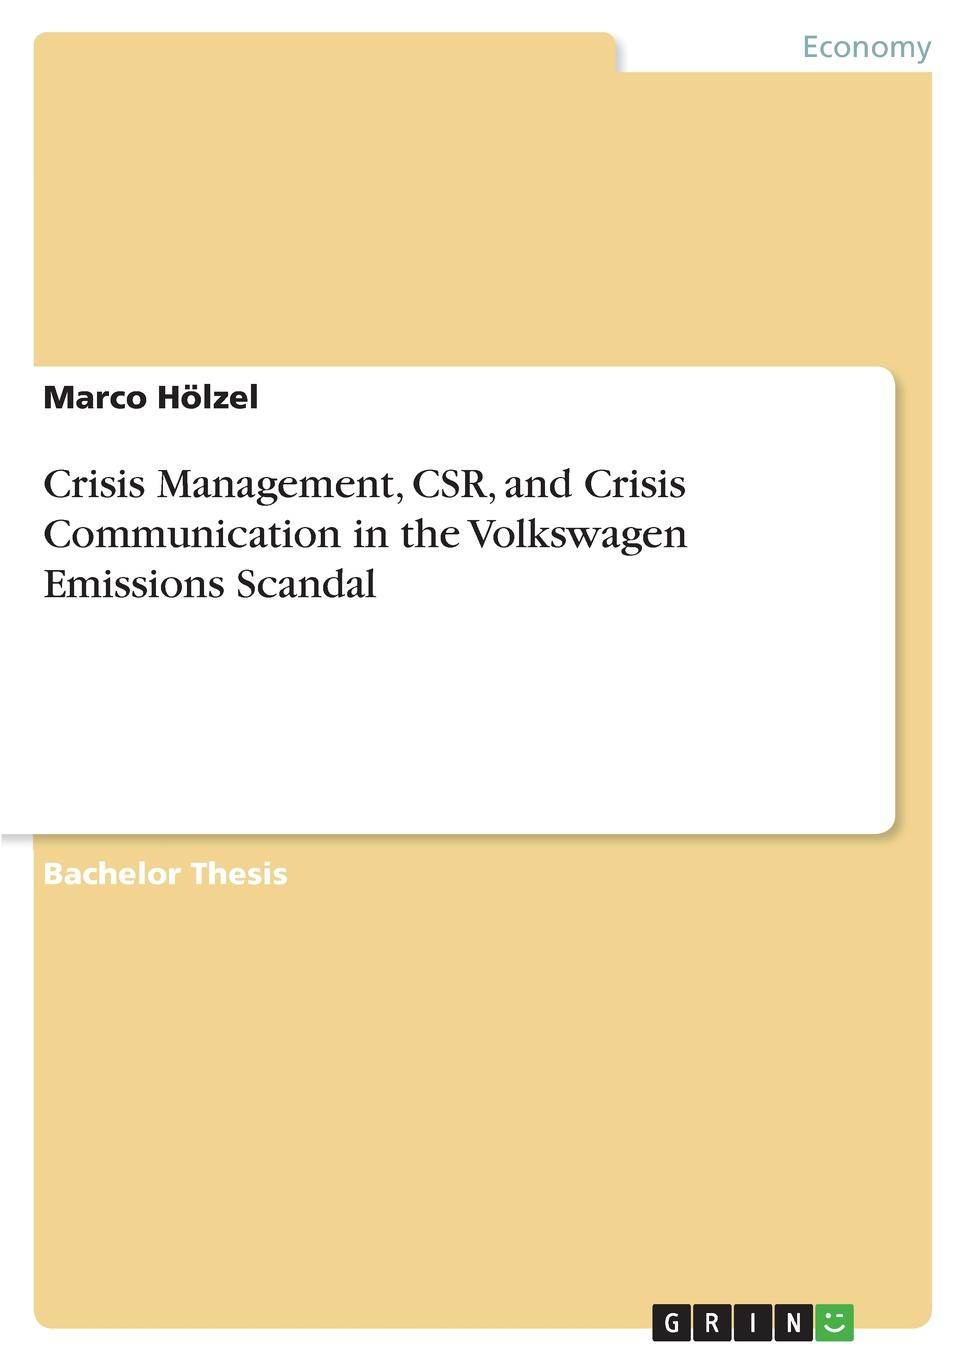 Marco Hölzel Crisis Management, CSR, and Crisis Communication in the Volkswagen Emissions Scandal seeger matthew w theorizing crisis communication